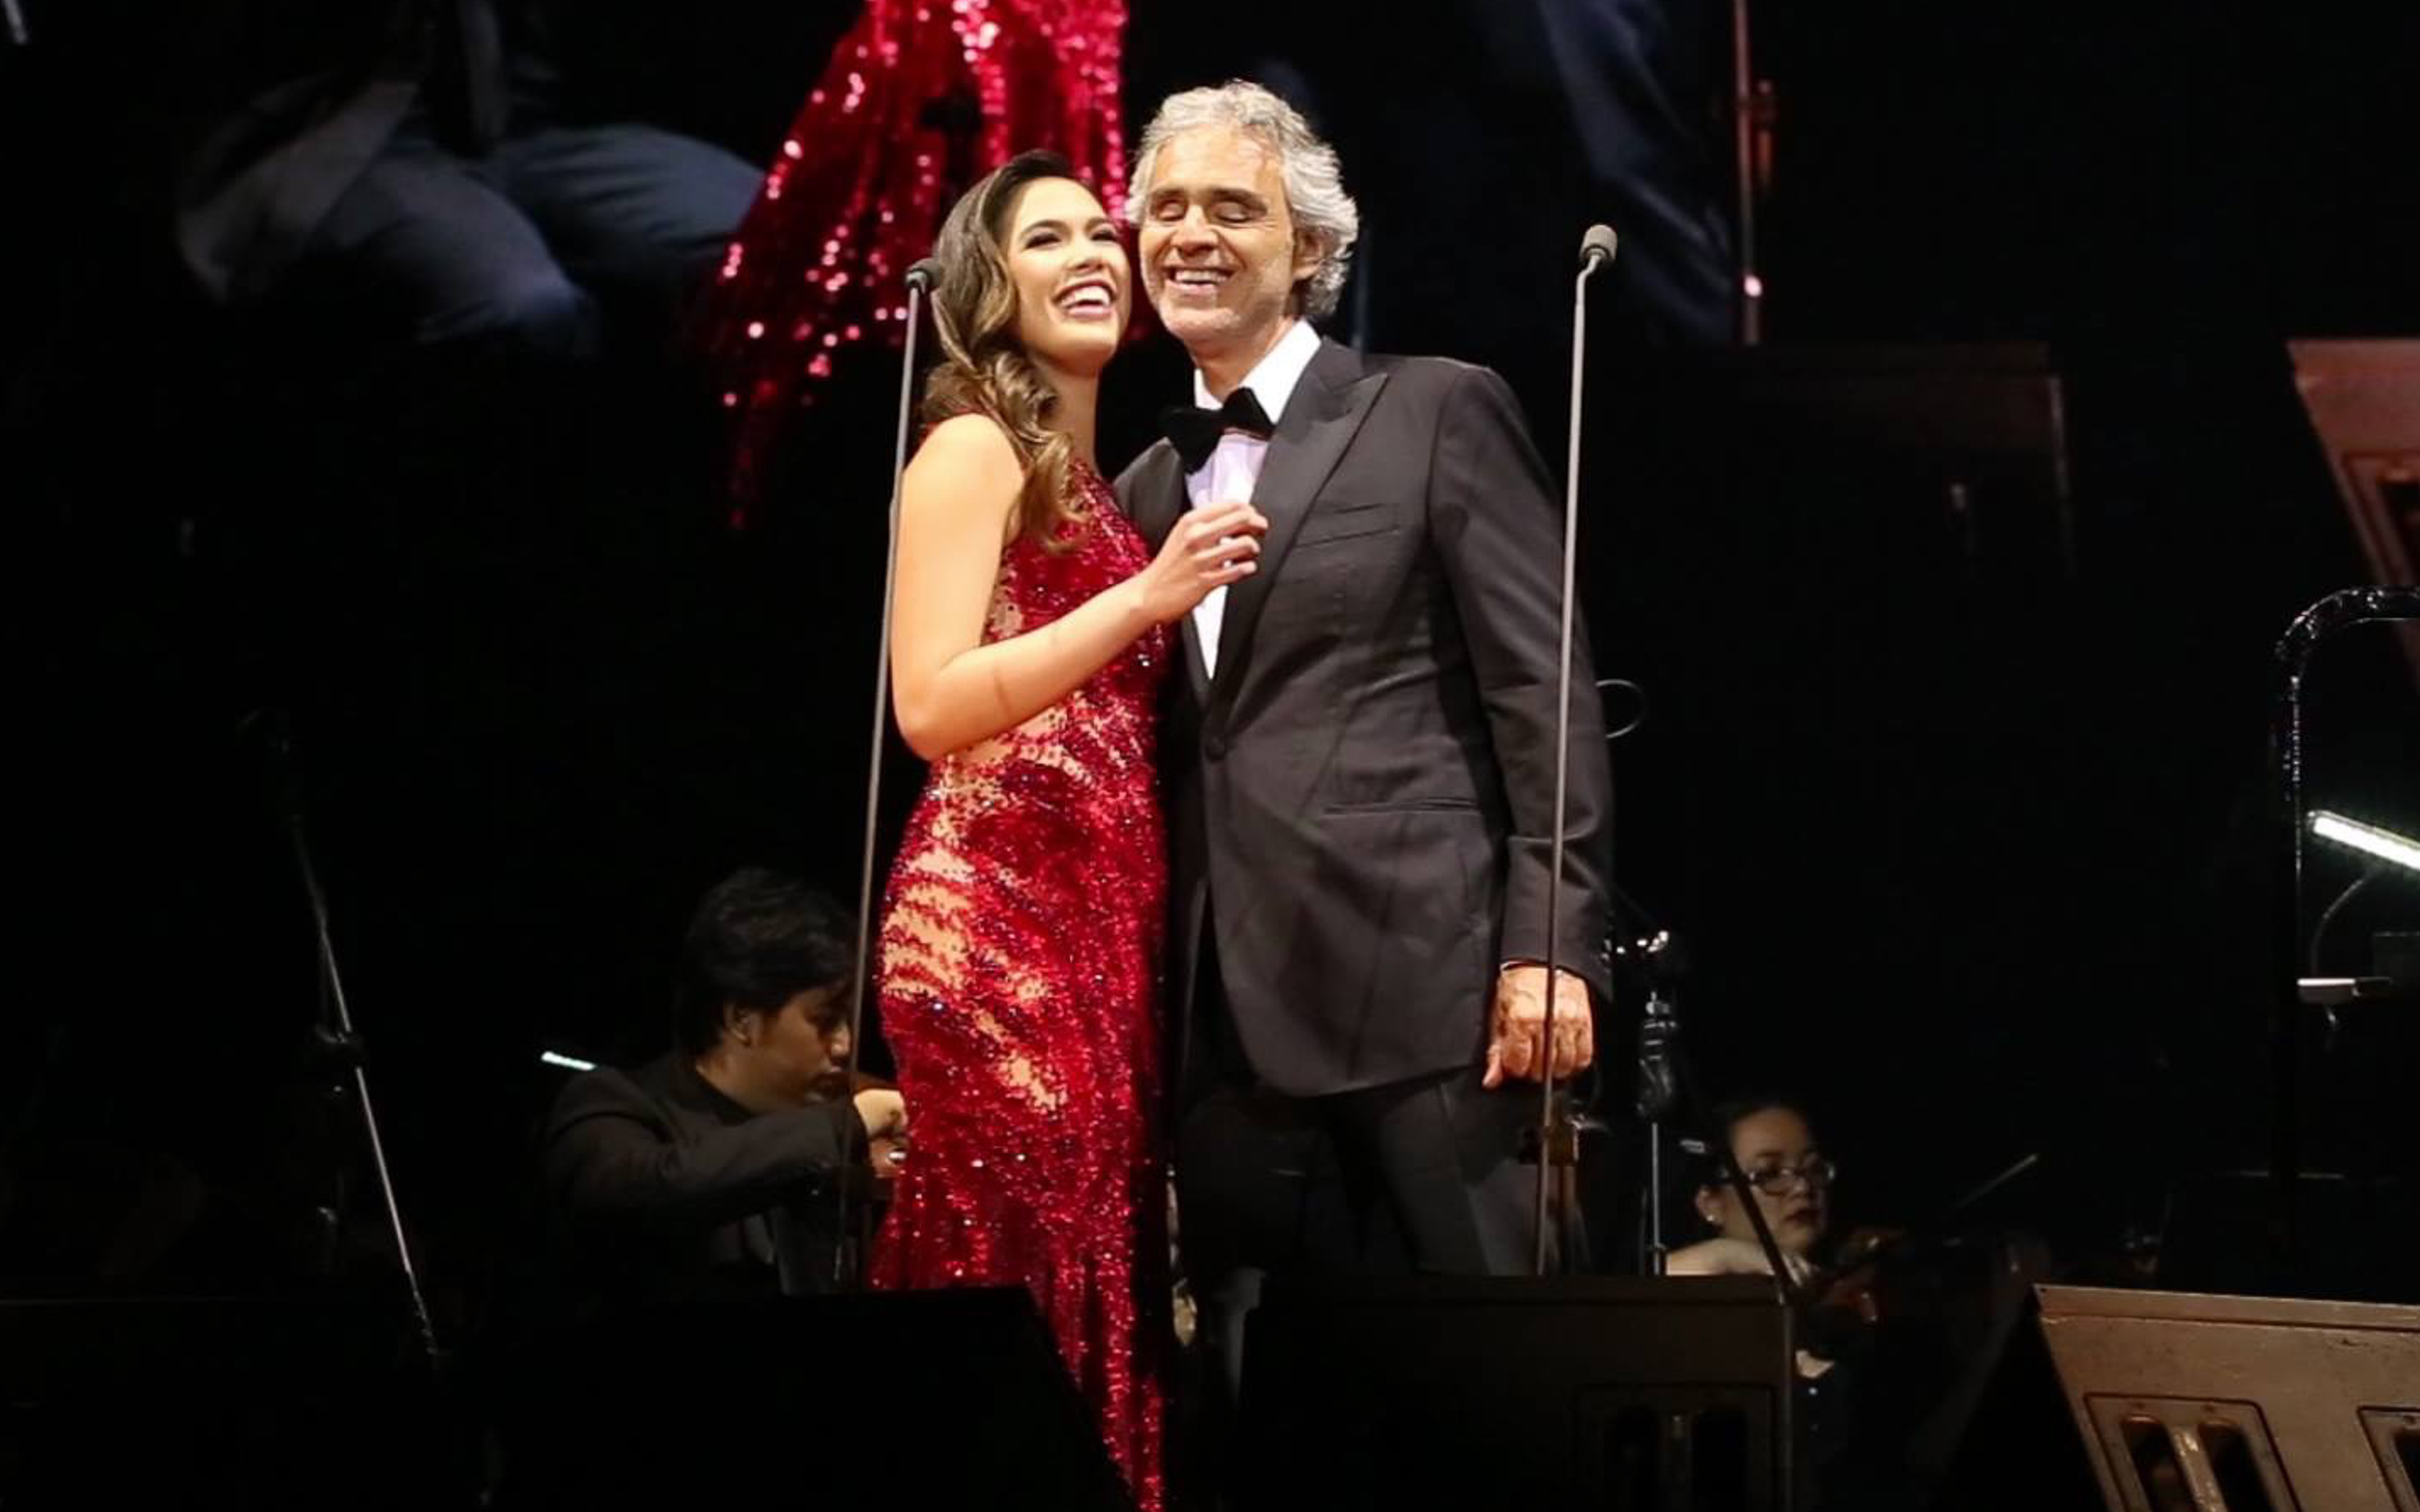 'CHEEK TO CHEEK.' Christine Allado and Andrea Bocelli share a cute moment after they perform a duet of his song 'Cheek to Cheek' at his Manila concert. Photo by Photo by Roberto Vivancos Studio www.robertovivancos.com